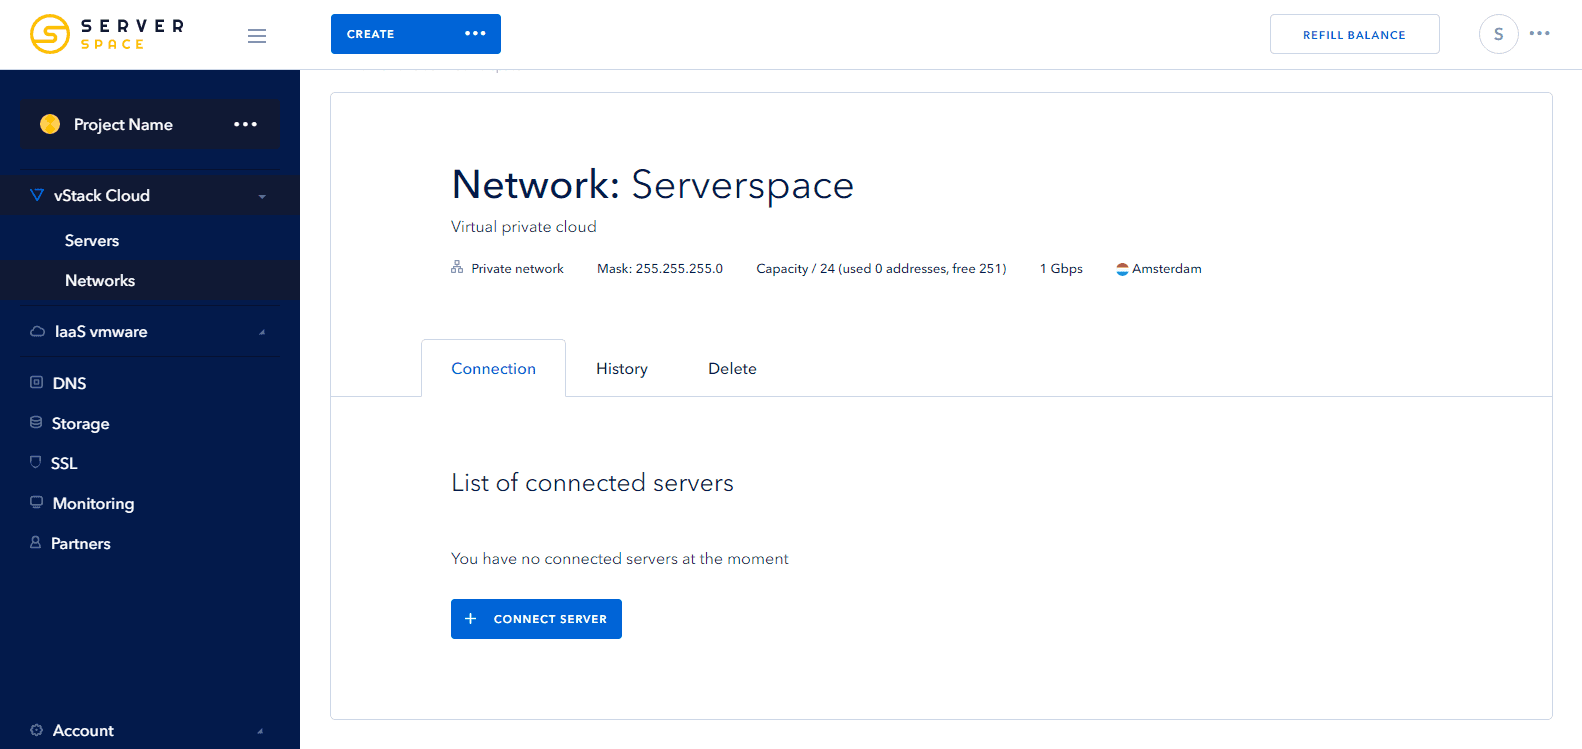 Connect Network Serverspace